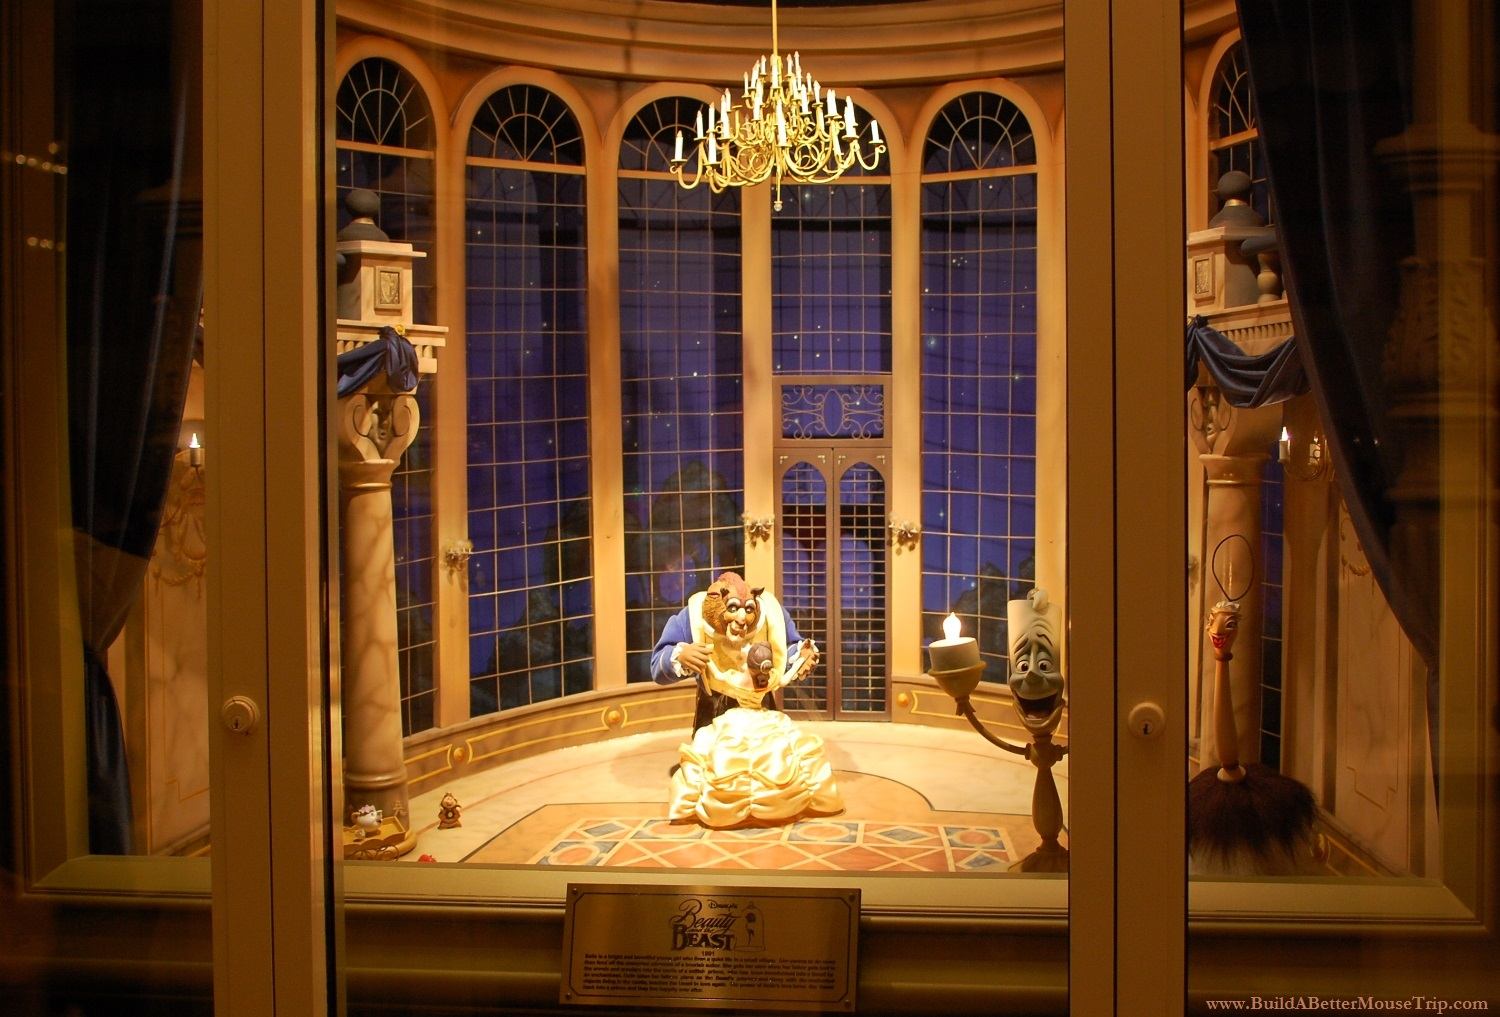 Beauty and the Beast window display in the Emporium gift shop on Main Street USA in the Magic Kingdom at Disney World.